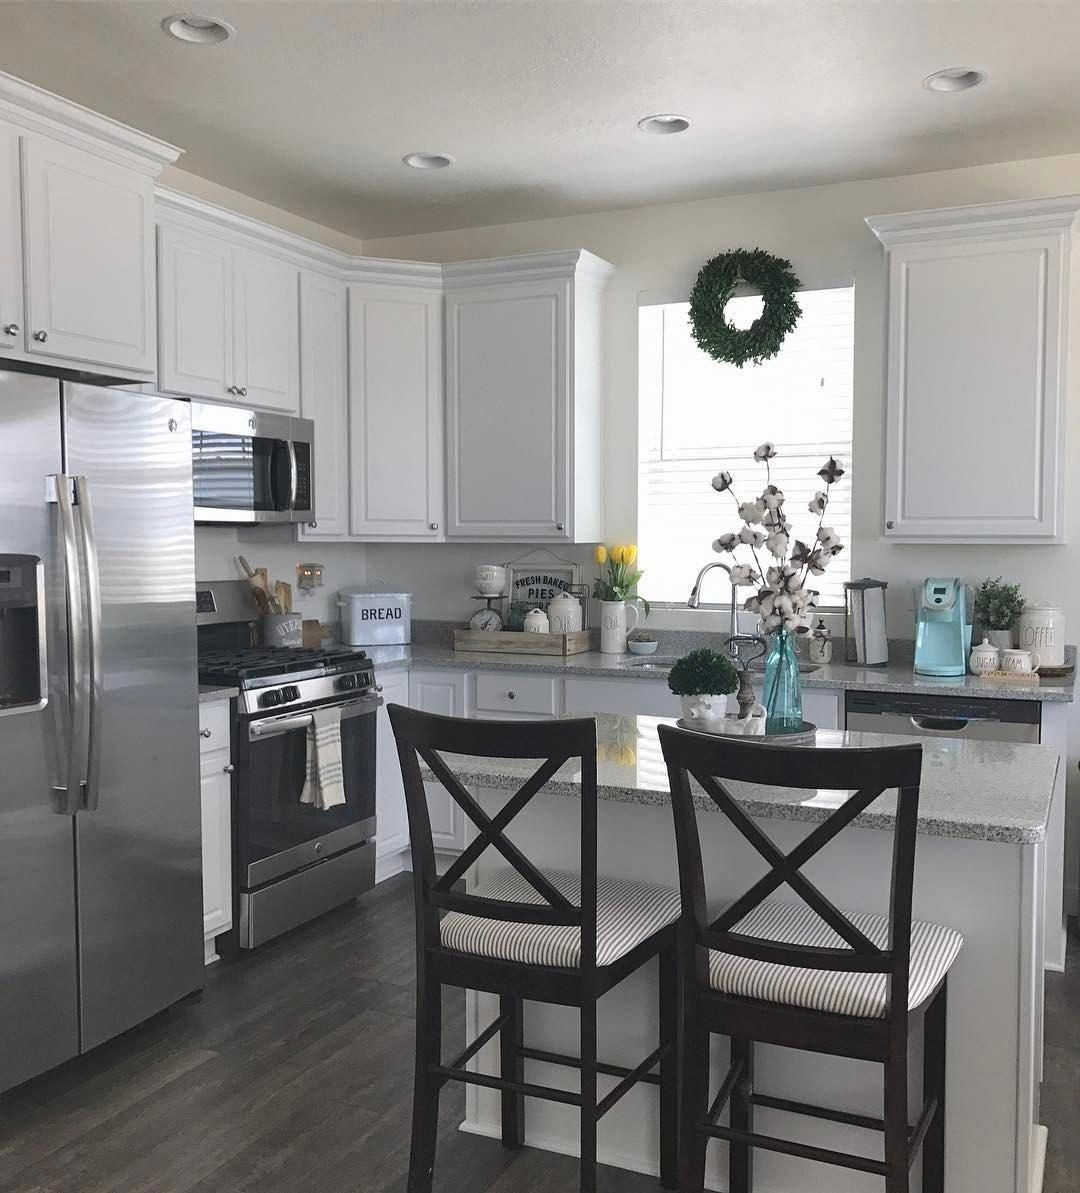 I Would Really Appreciate All Of This Renovation Kitchen Diy Home Decor Kitchen Kitchen Design Small Kitchen Remodel